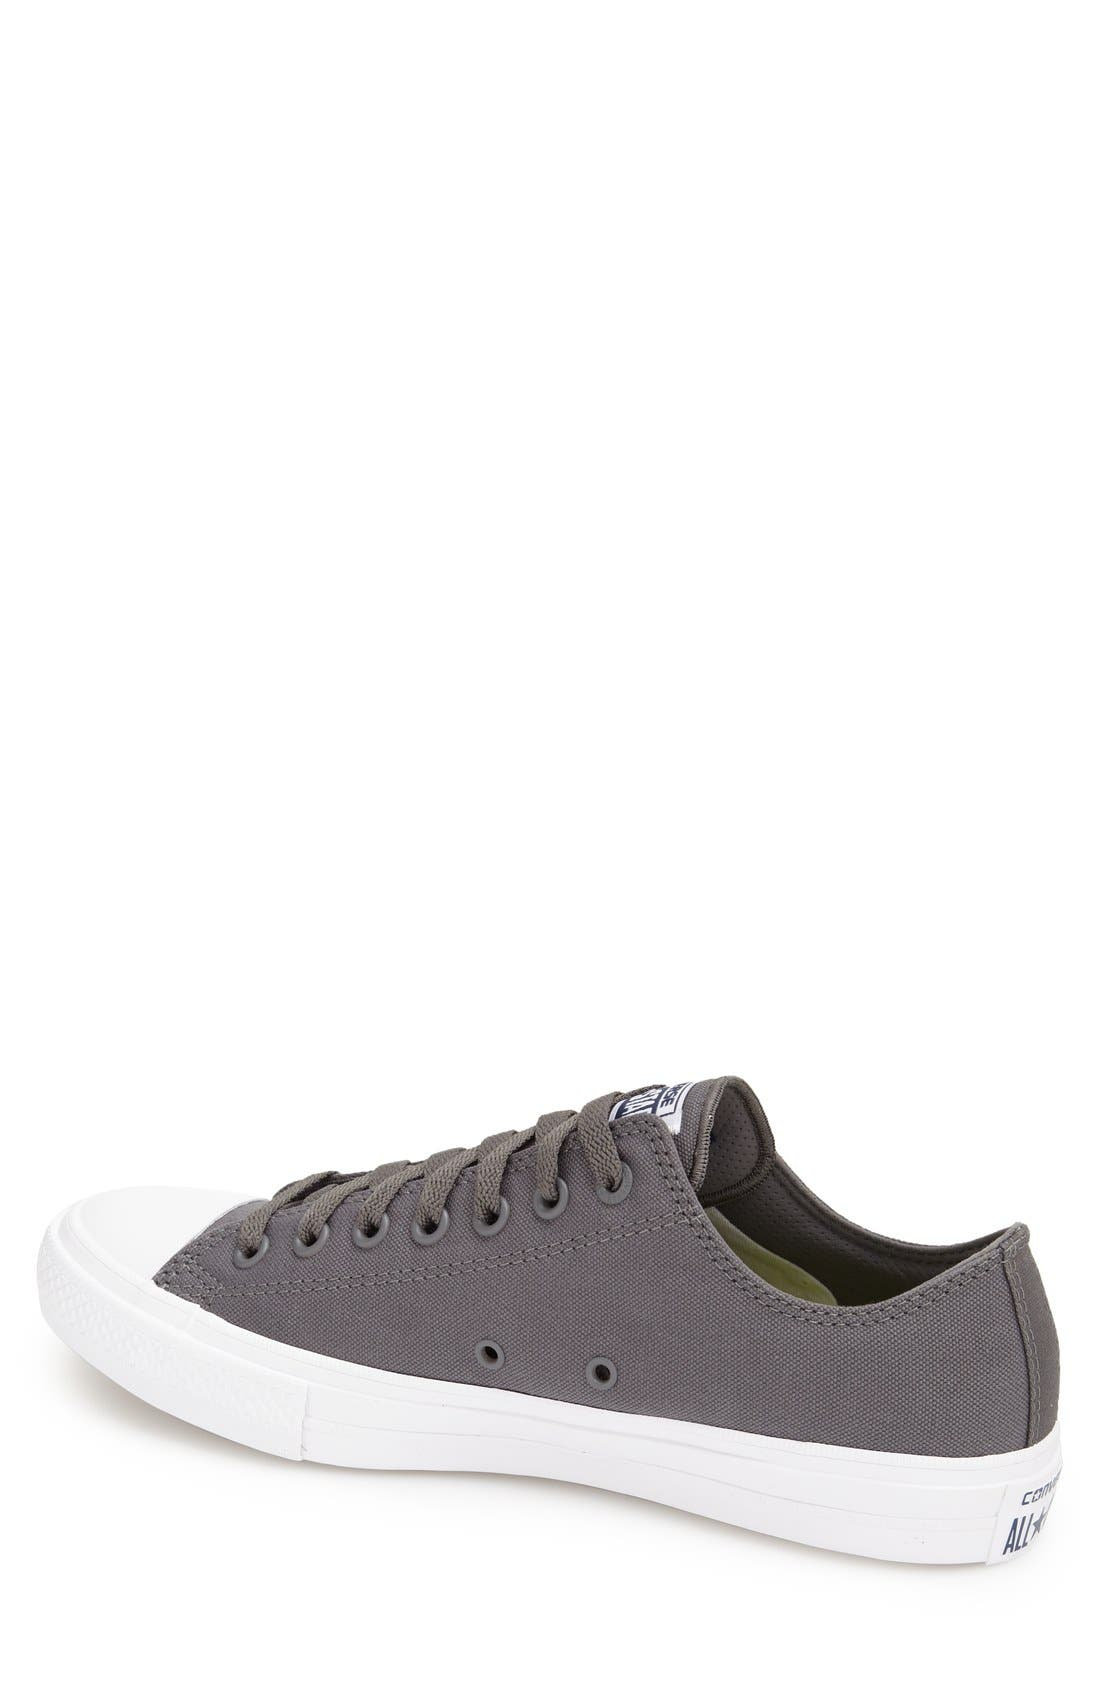 Chuck Taylor<sup>®</sup> All Star<sup>®</sup> II 'Ox' Canvas Sneaker,                             Alternate thumbnail 15, color,